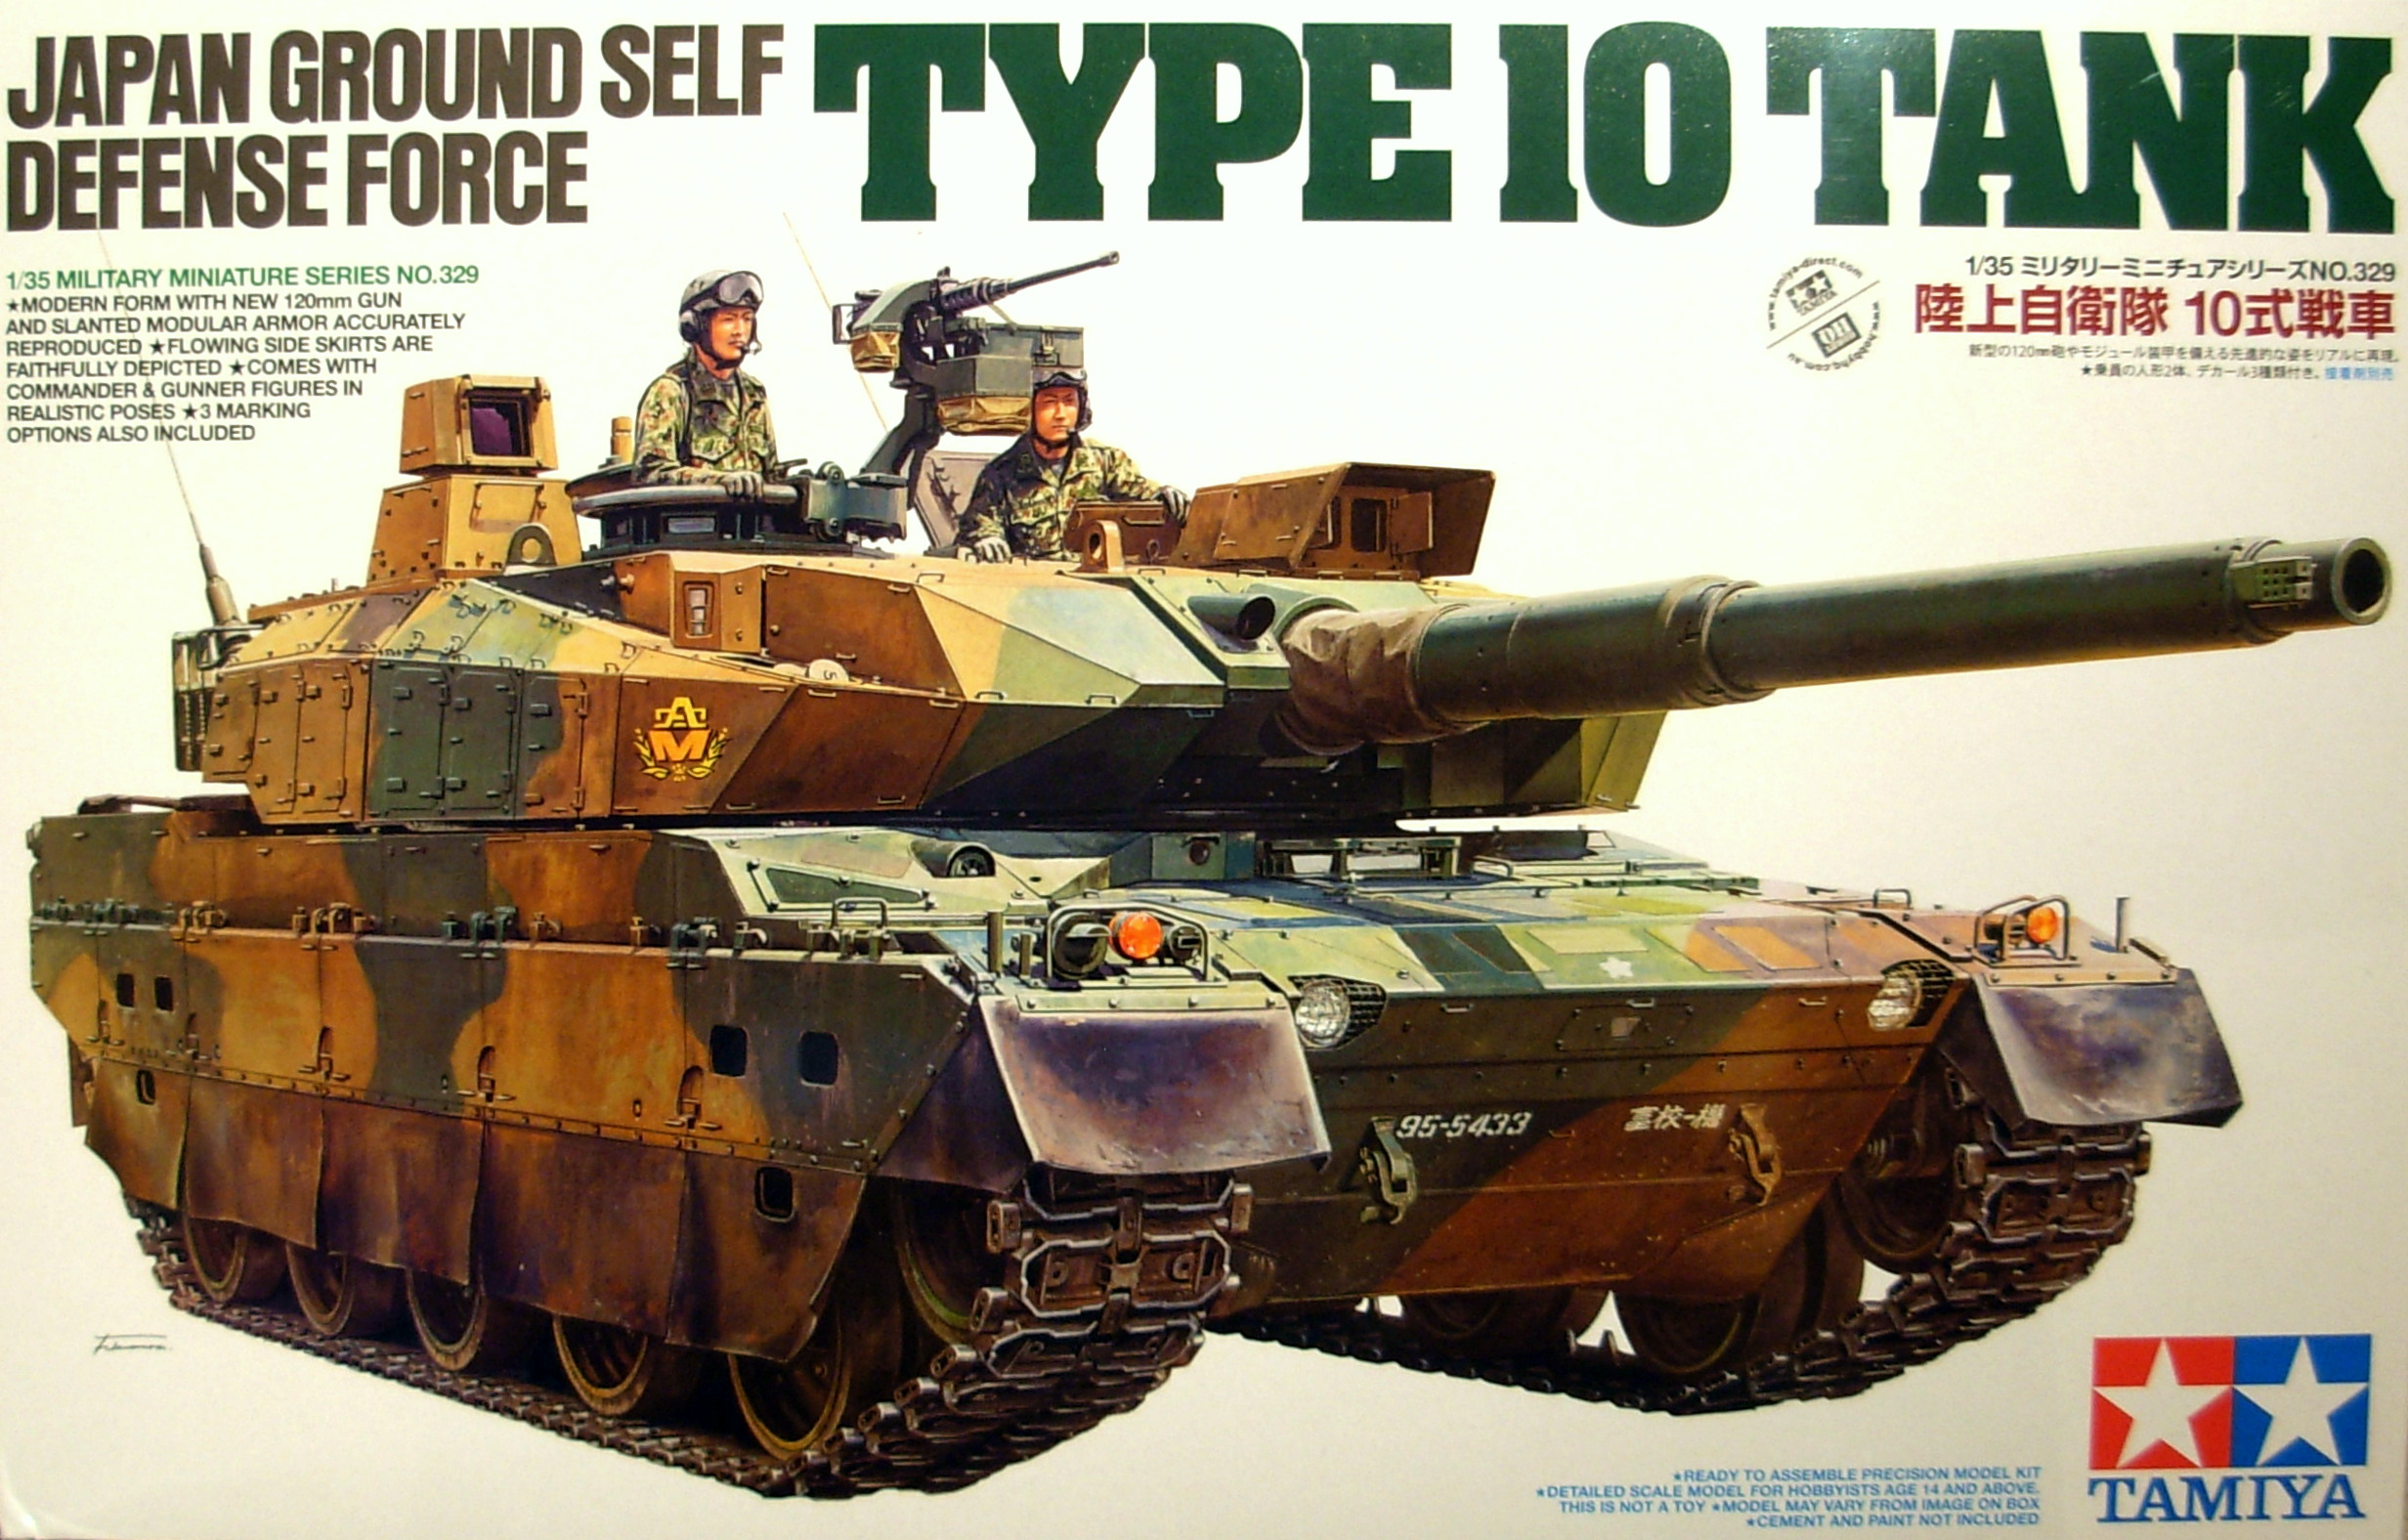 Japanese Type 10 Main Battle Tank